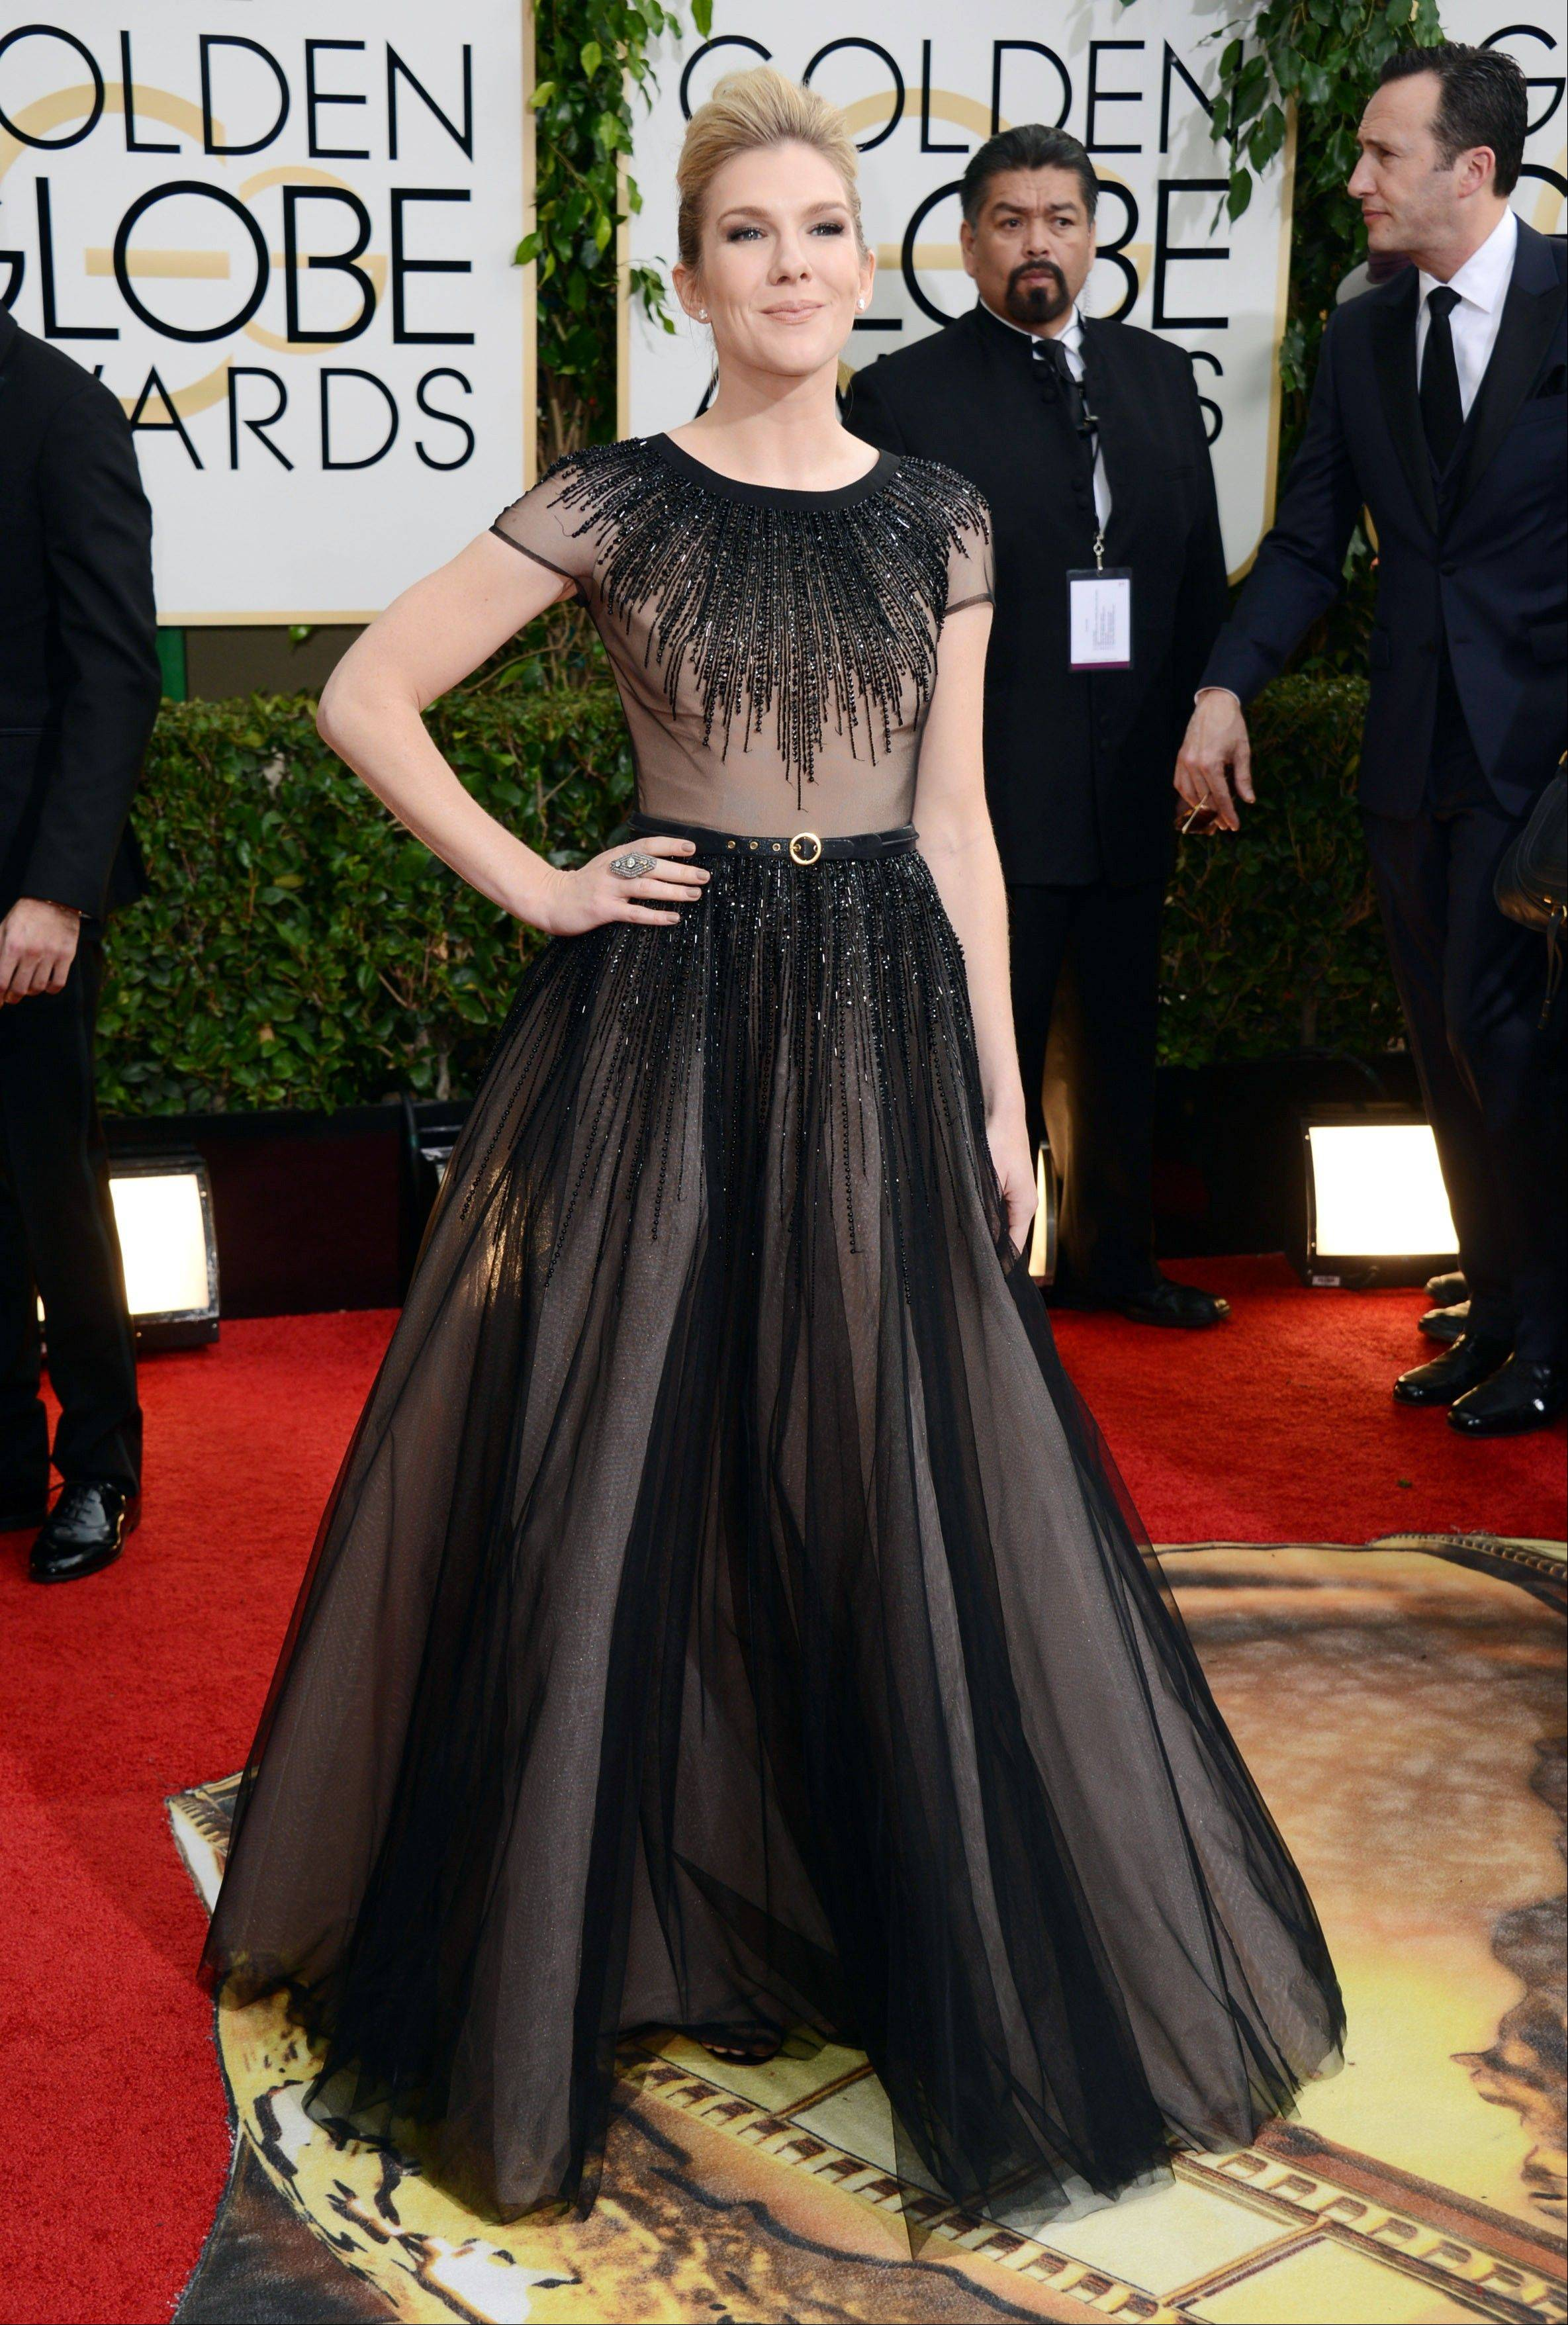 Lily Rabe arrives at the 71st annual Golden Globe Awards.